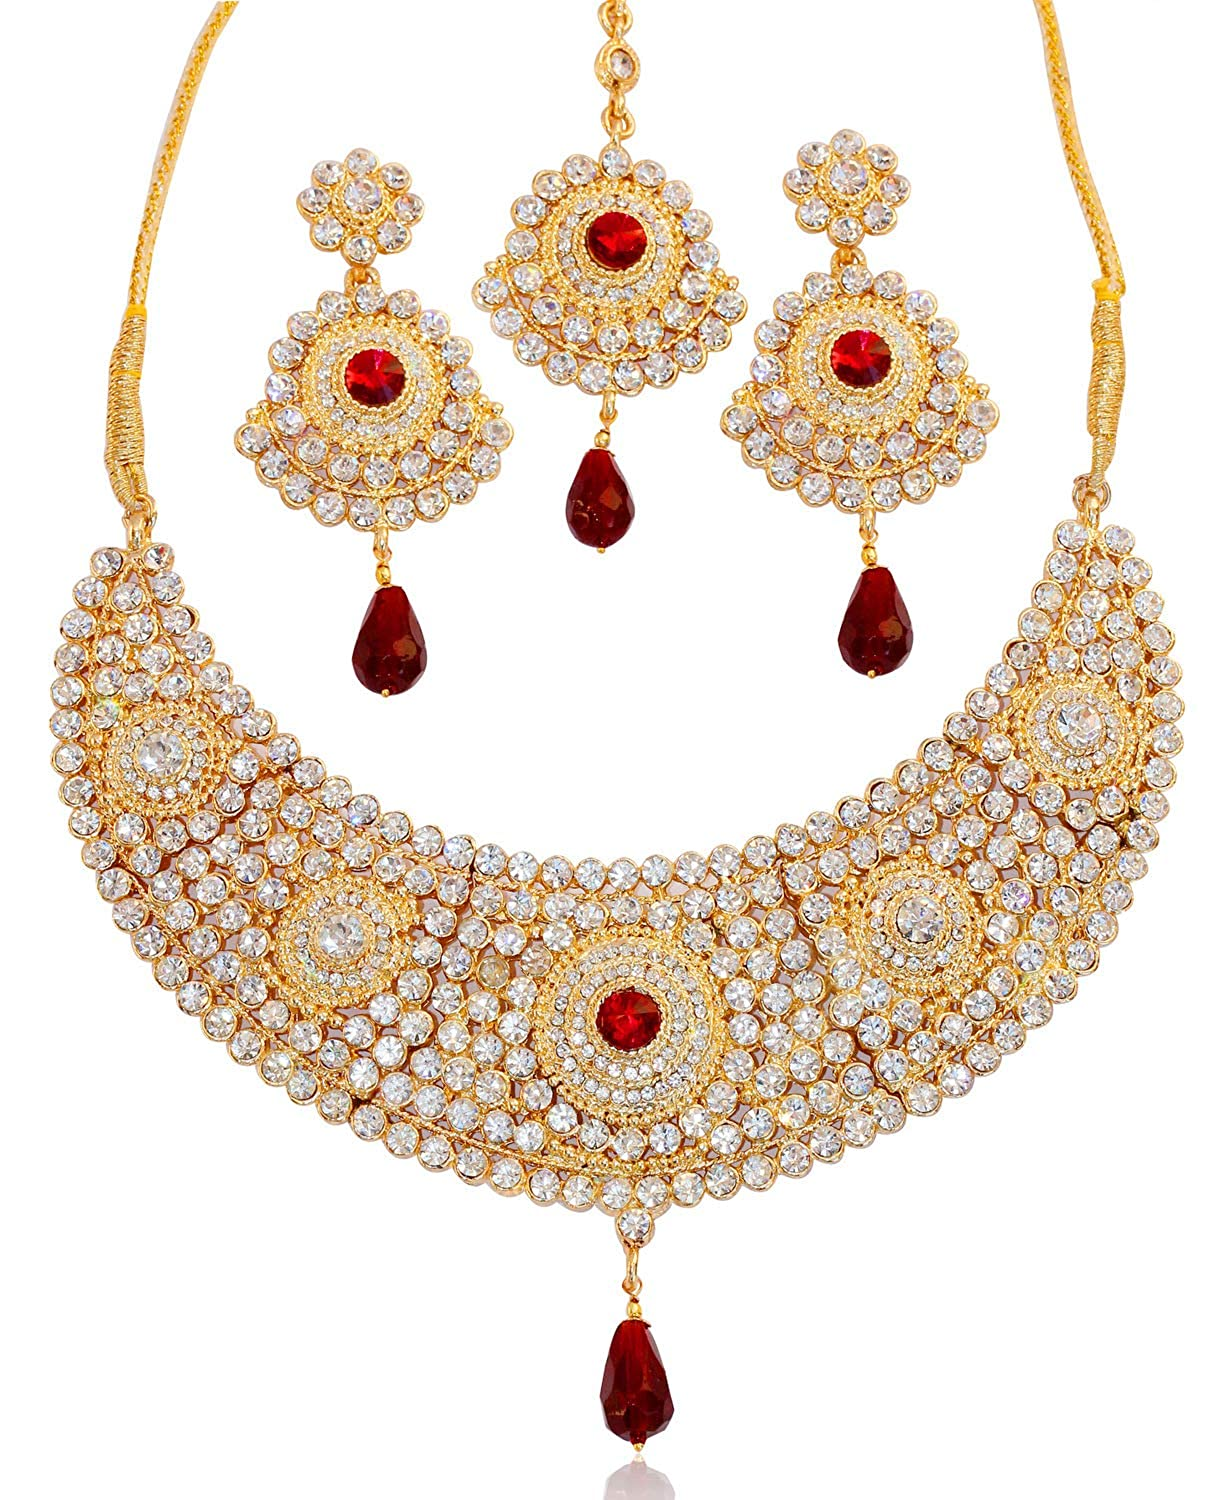 Indian Bollywood Gold Plated Ruby Kundan Stone Necklace Earring Wedding Jewlery In Short Supply Fashion Jewelry